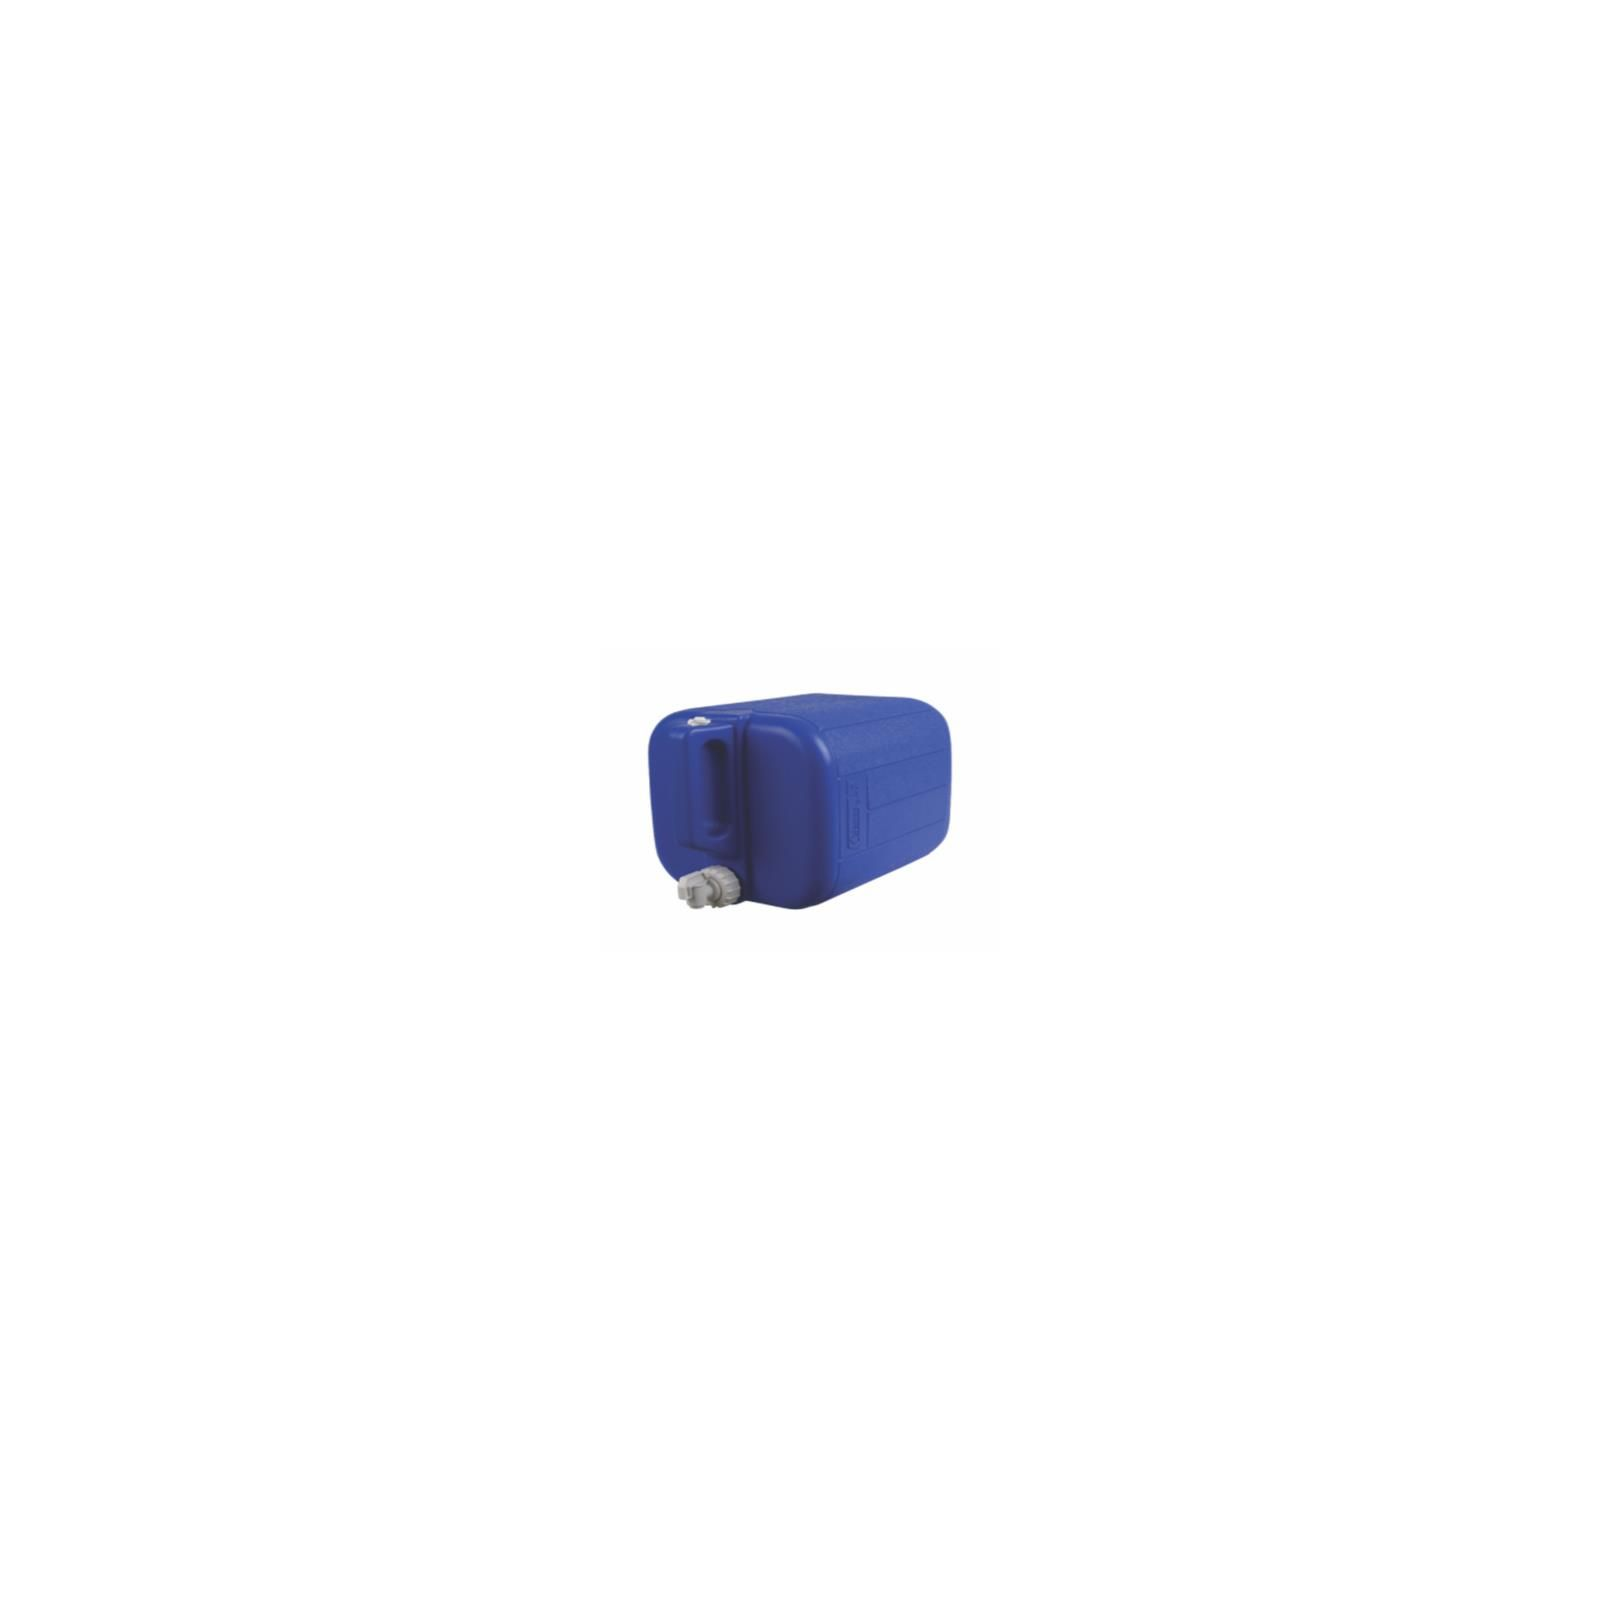 5620B718G Polylite Water Carrier, Blue, 5-Gals. - Quantity 1